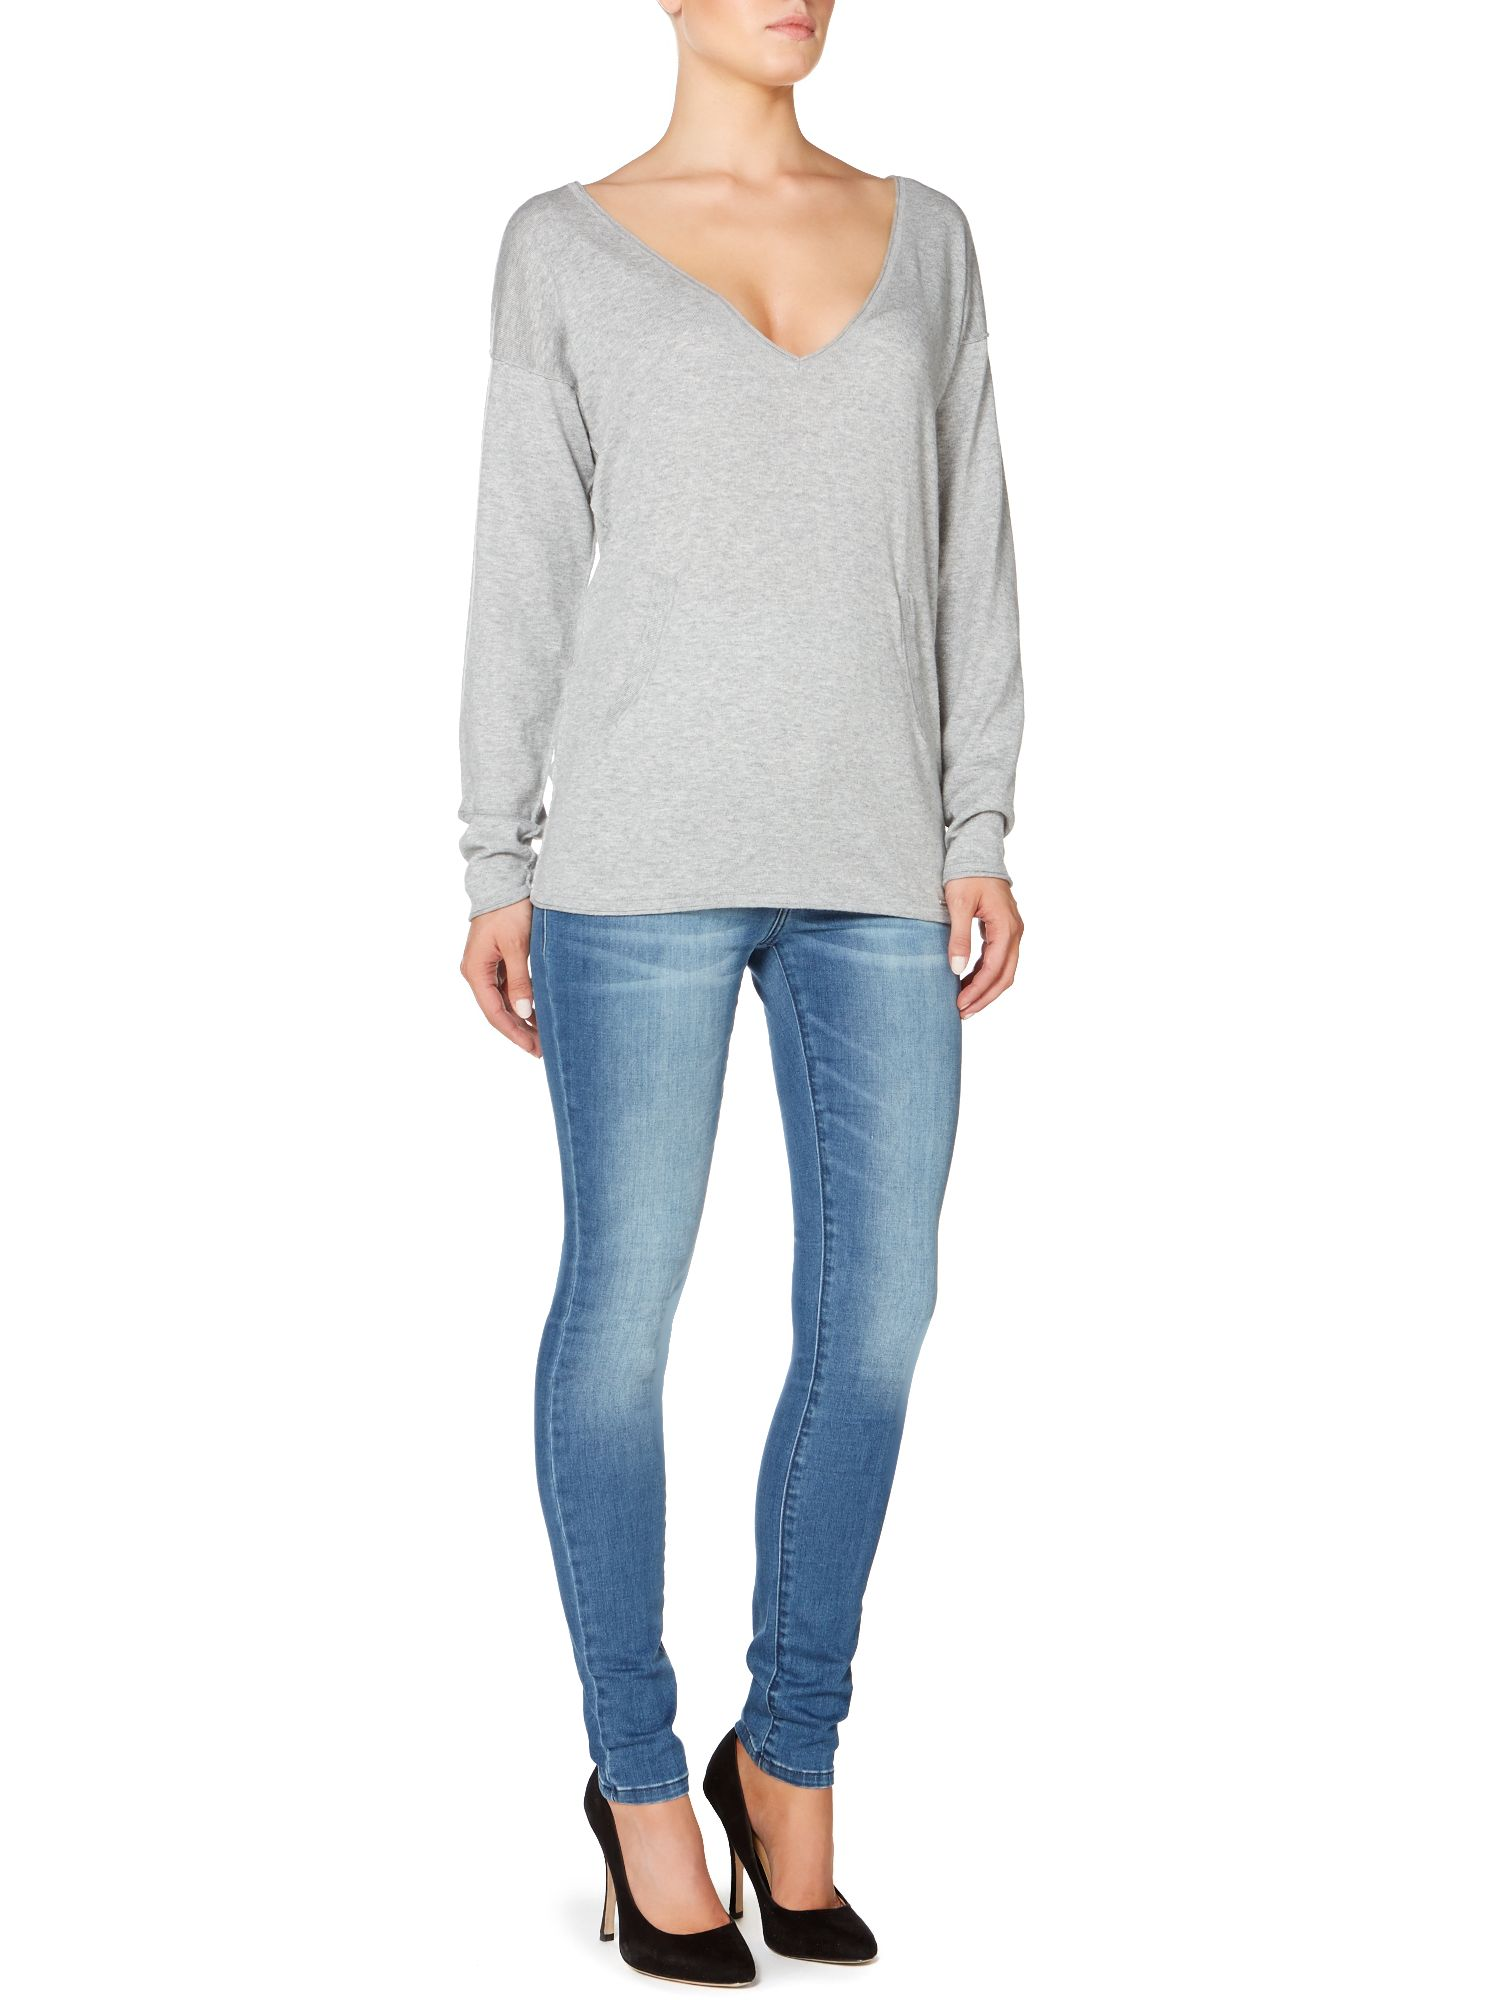 Seve long sleeve cashmere mix top